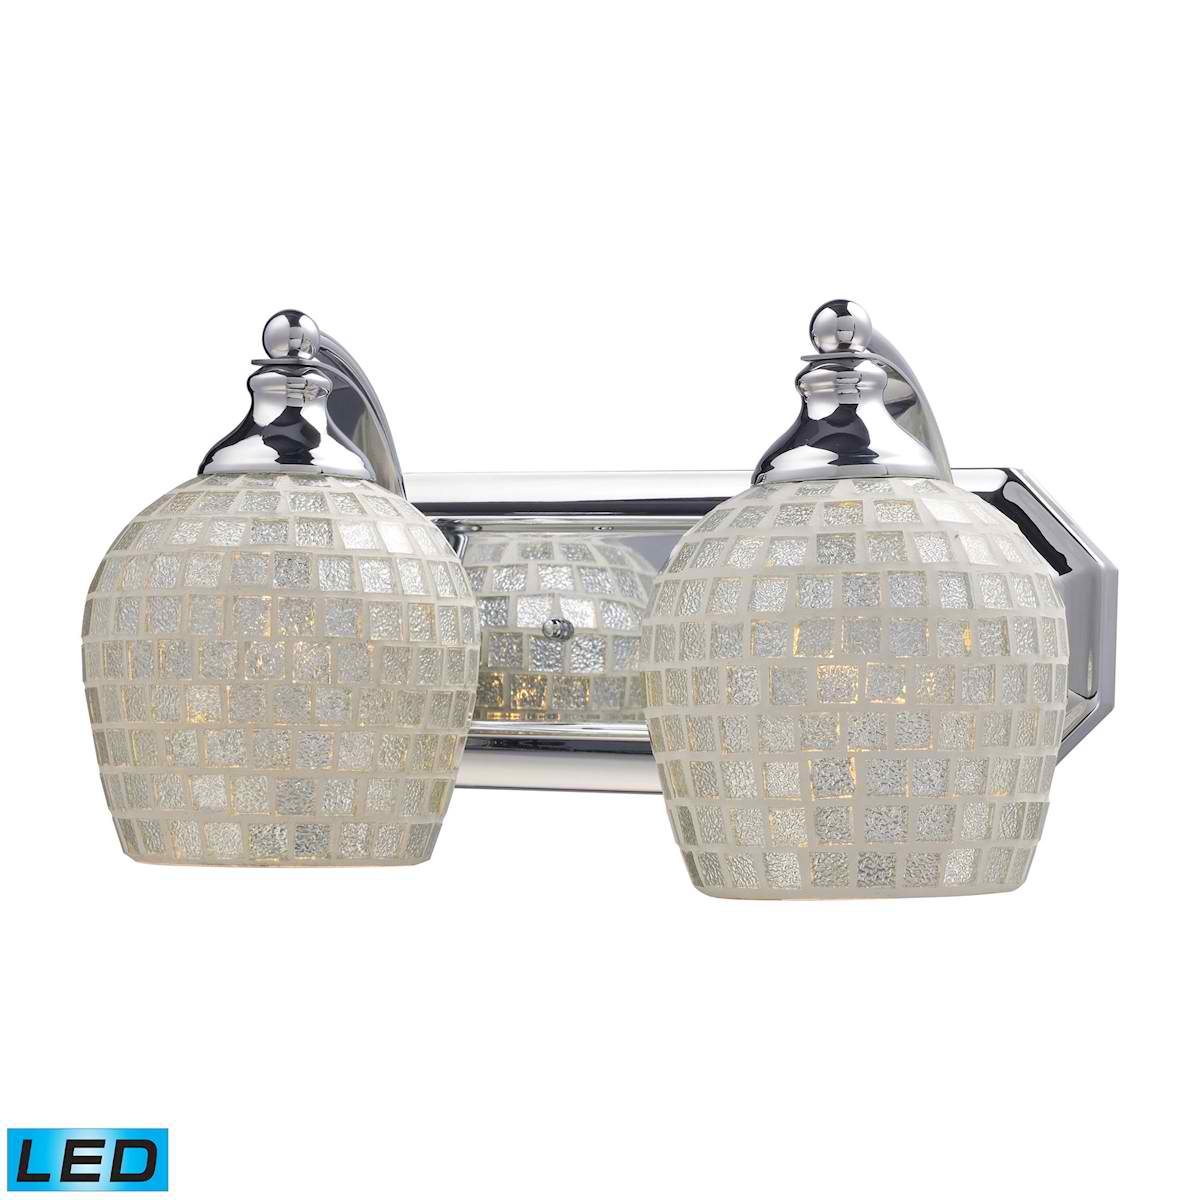 2 Light Vanity in Polished Chrome and Silver Mosaic Glass - LED, 800 Lumens (1600 Lumens Total) With Full Scale